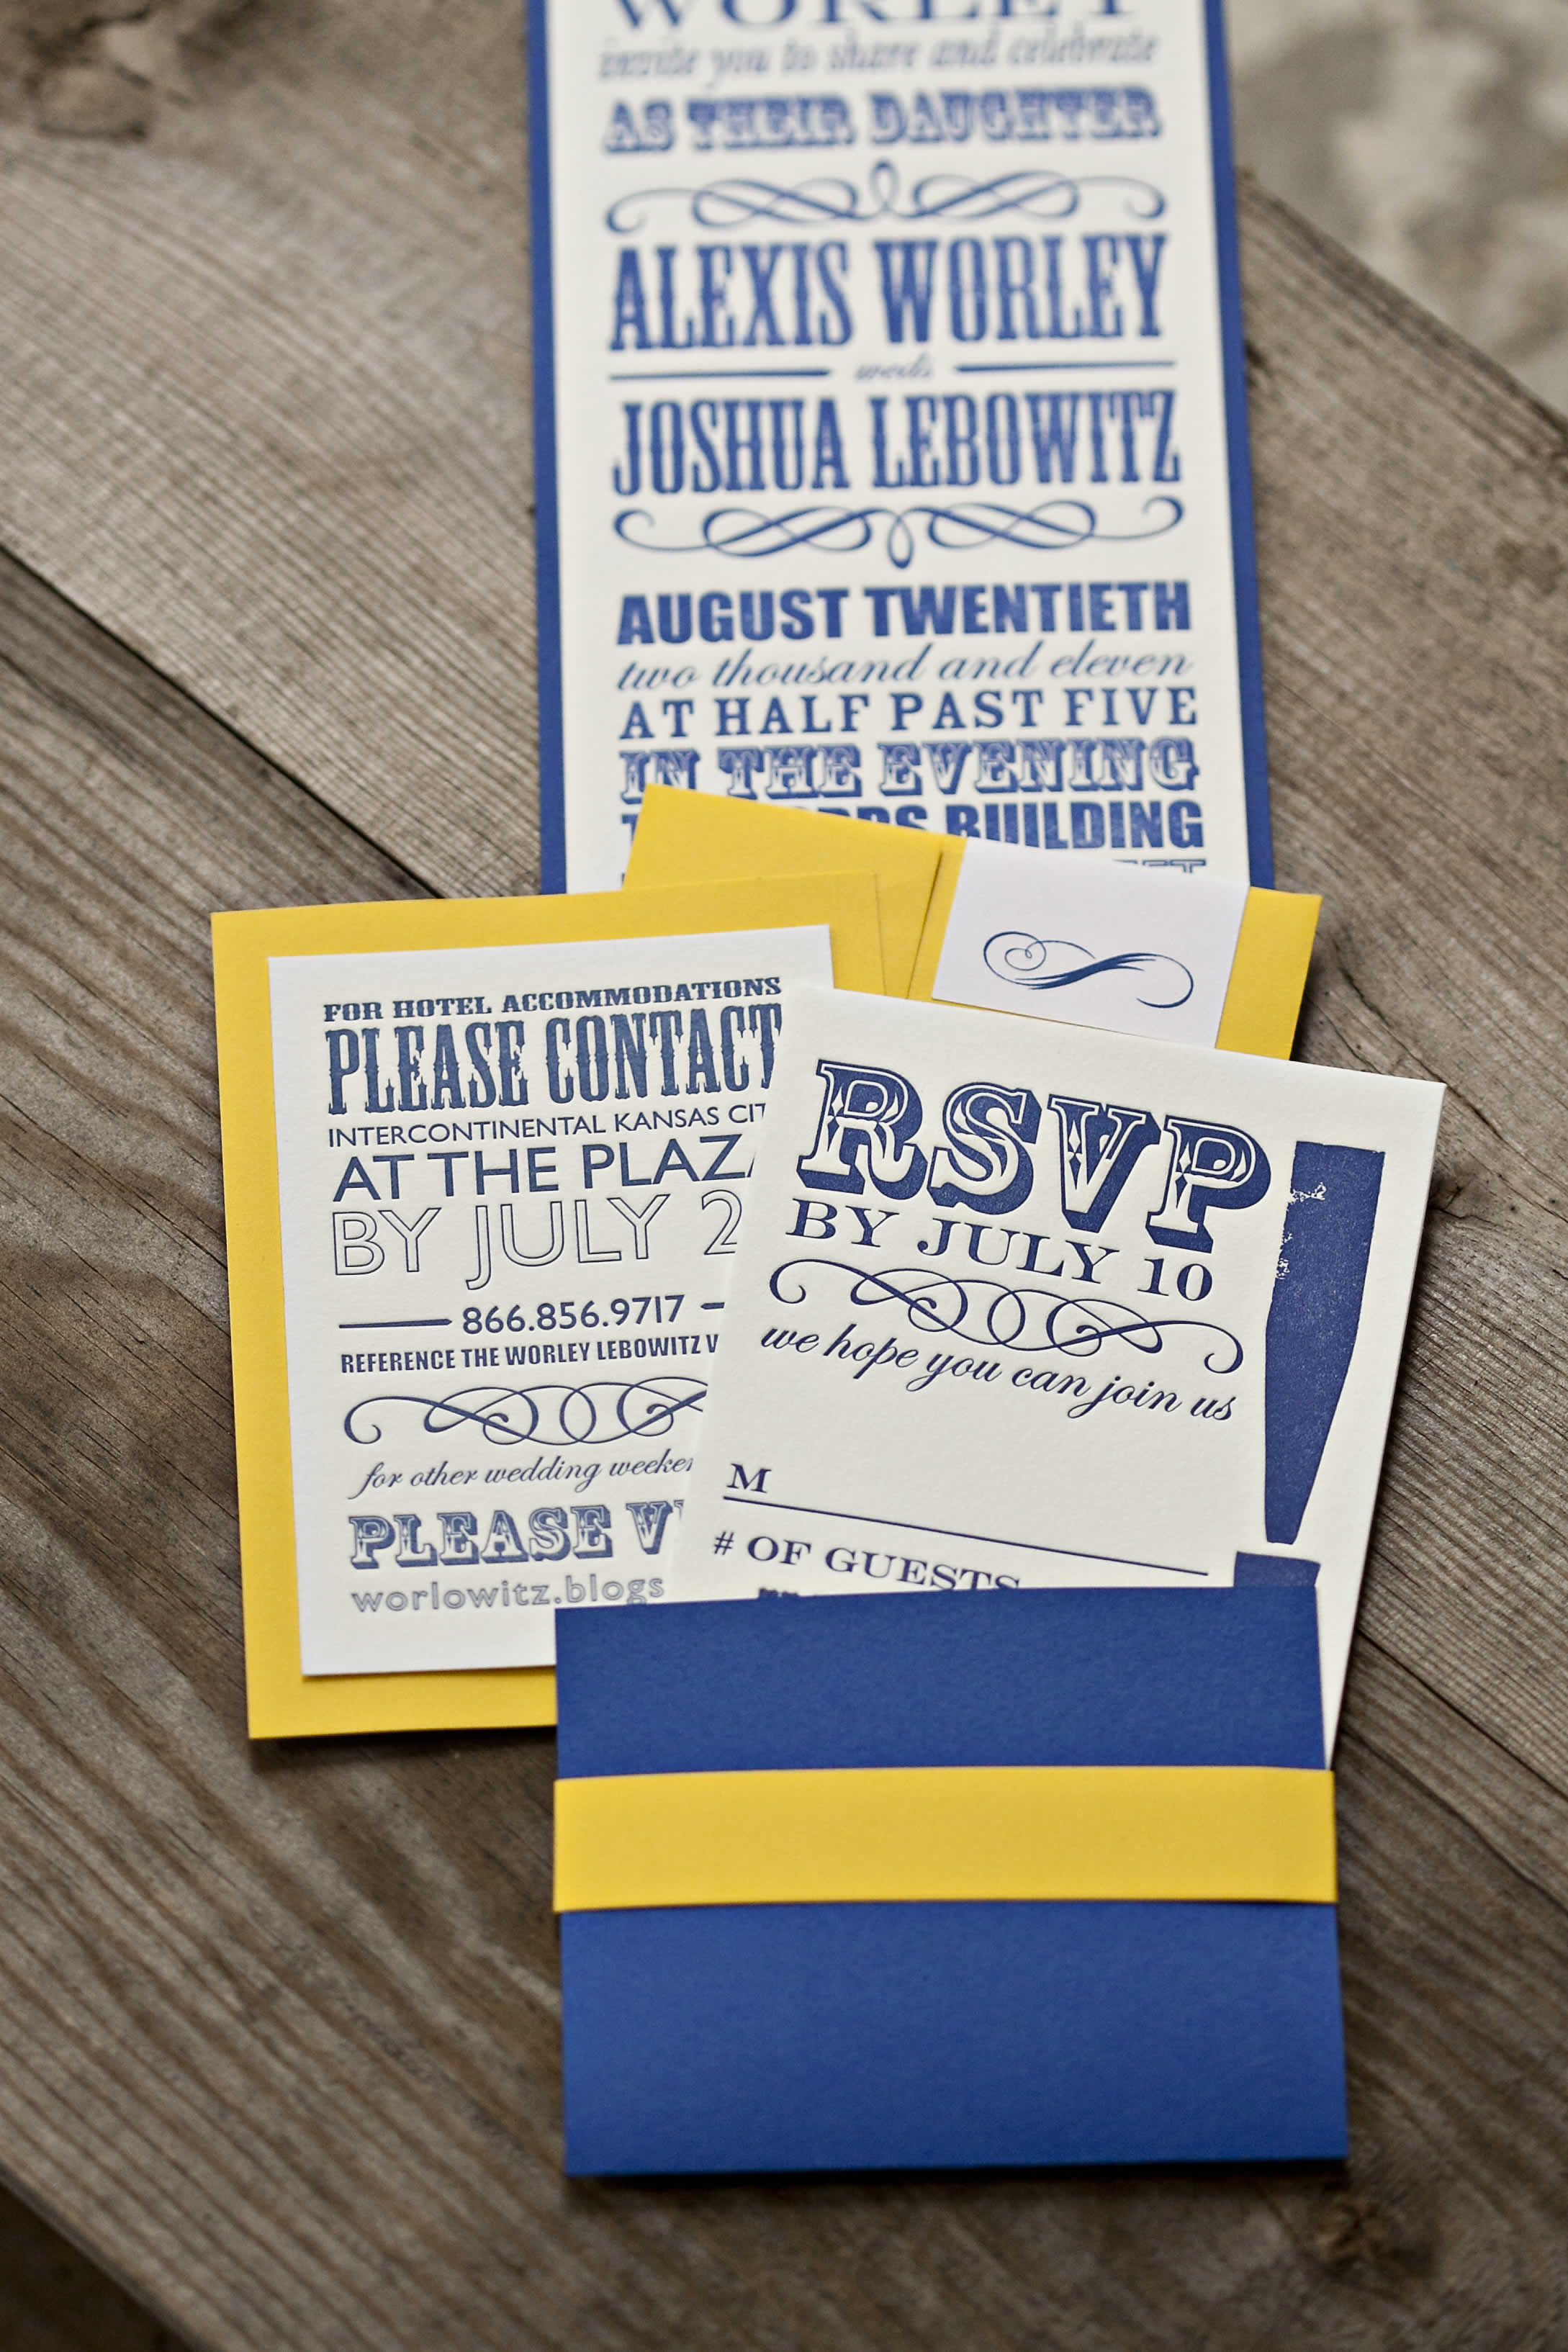 My wedding invitations!!! http://emmyrice.com/wedding/